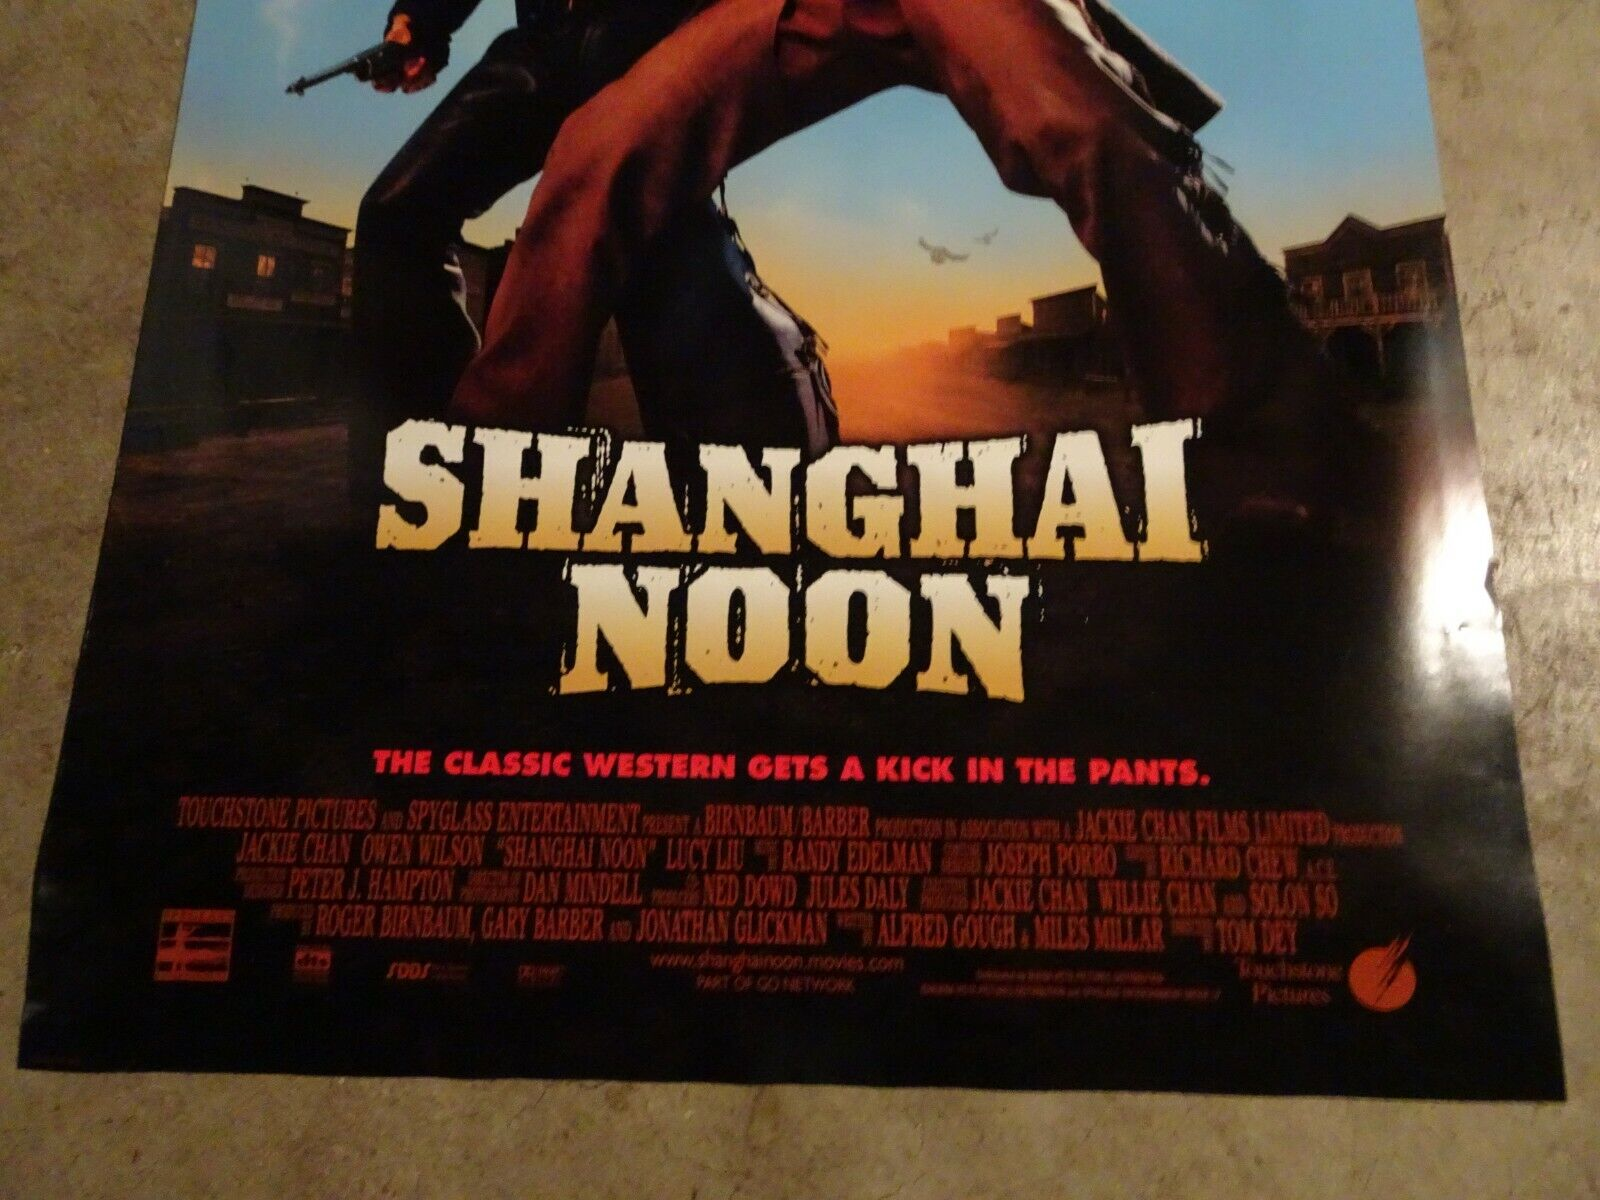 SHANGHAI NOON - MOVIE POSTER WITH JACKIE CHAN AND OWEN WILSON  - $1.99